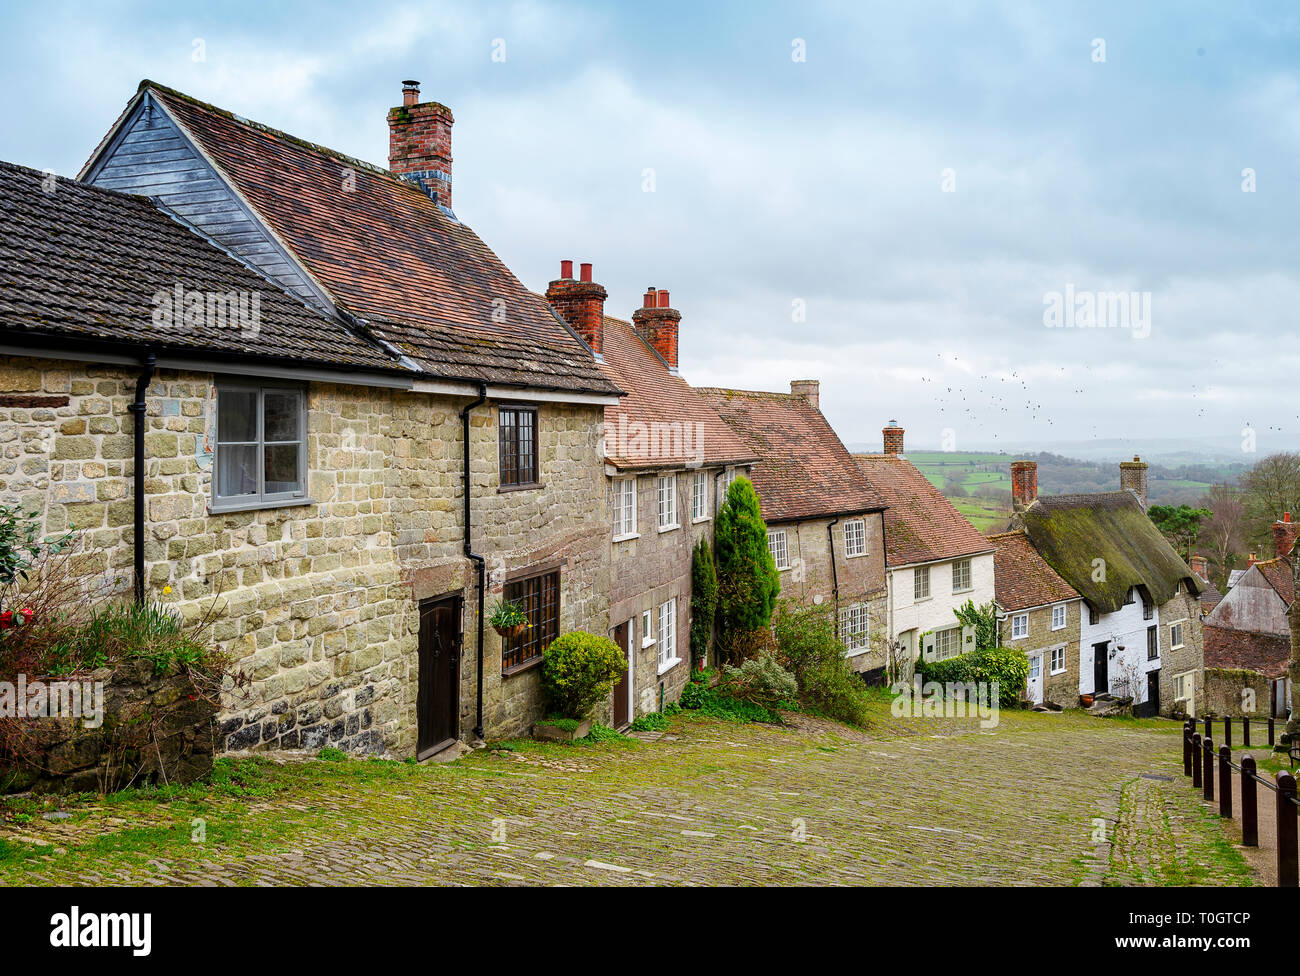 Gold Hill in Shaftesbury, Dorset England - Stock Image